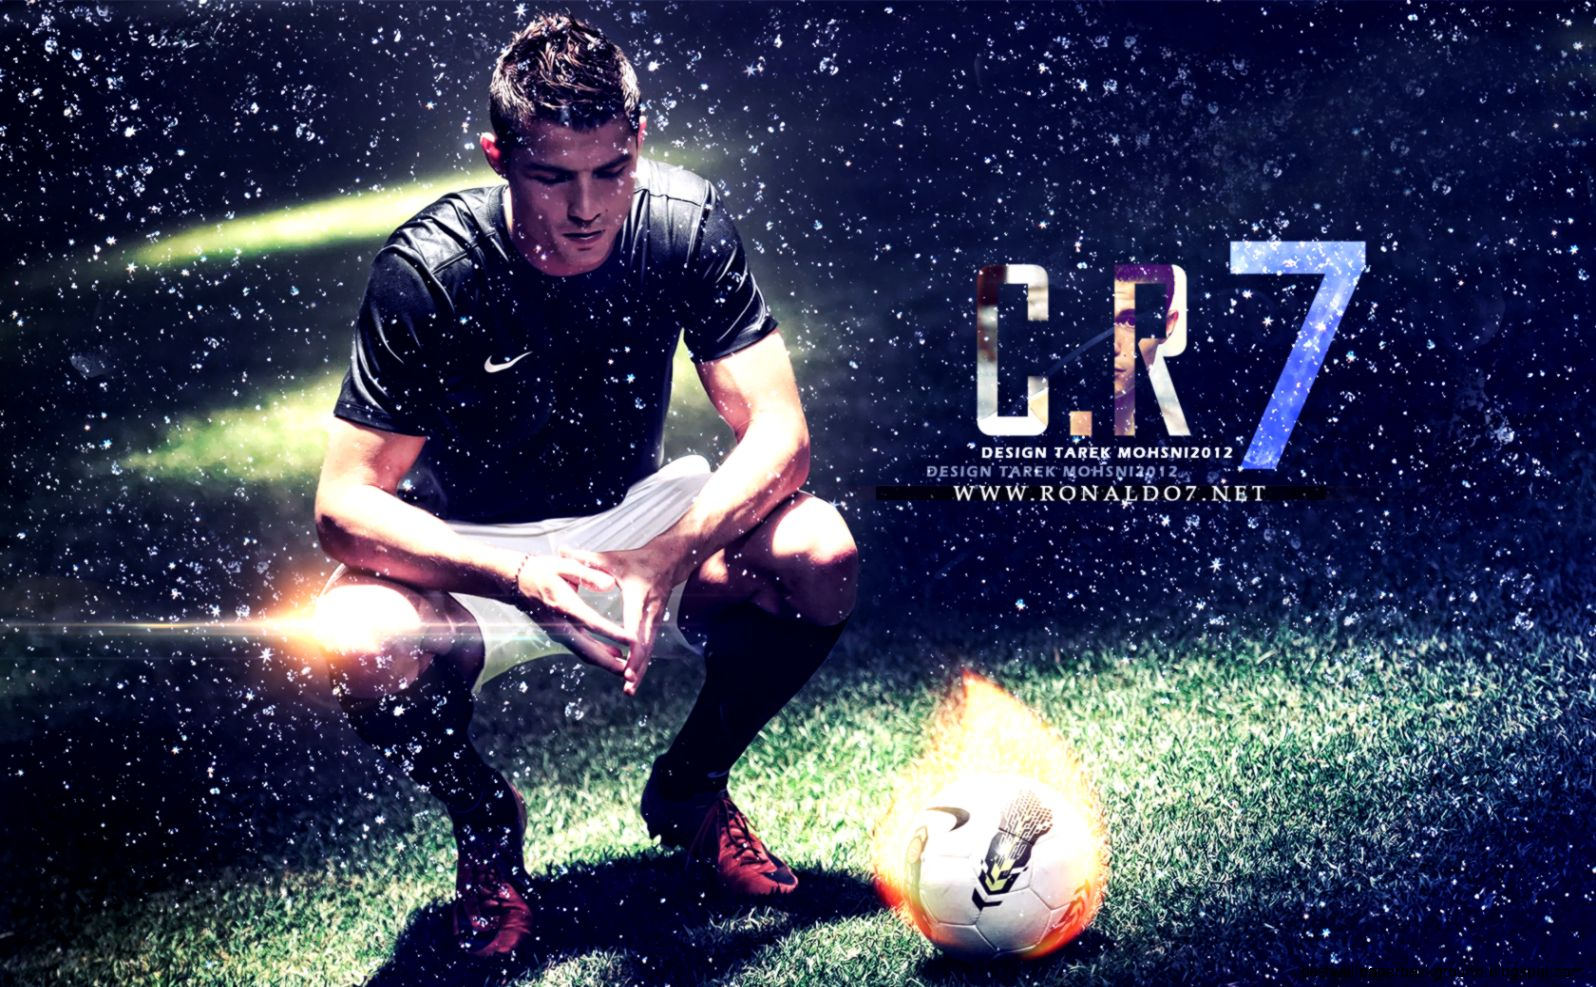 cool cristiano ronaldo wallpapers